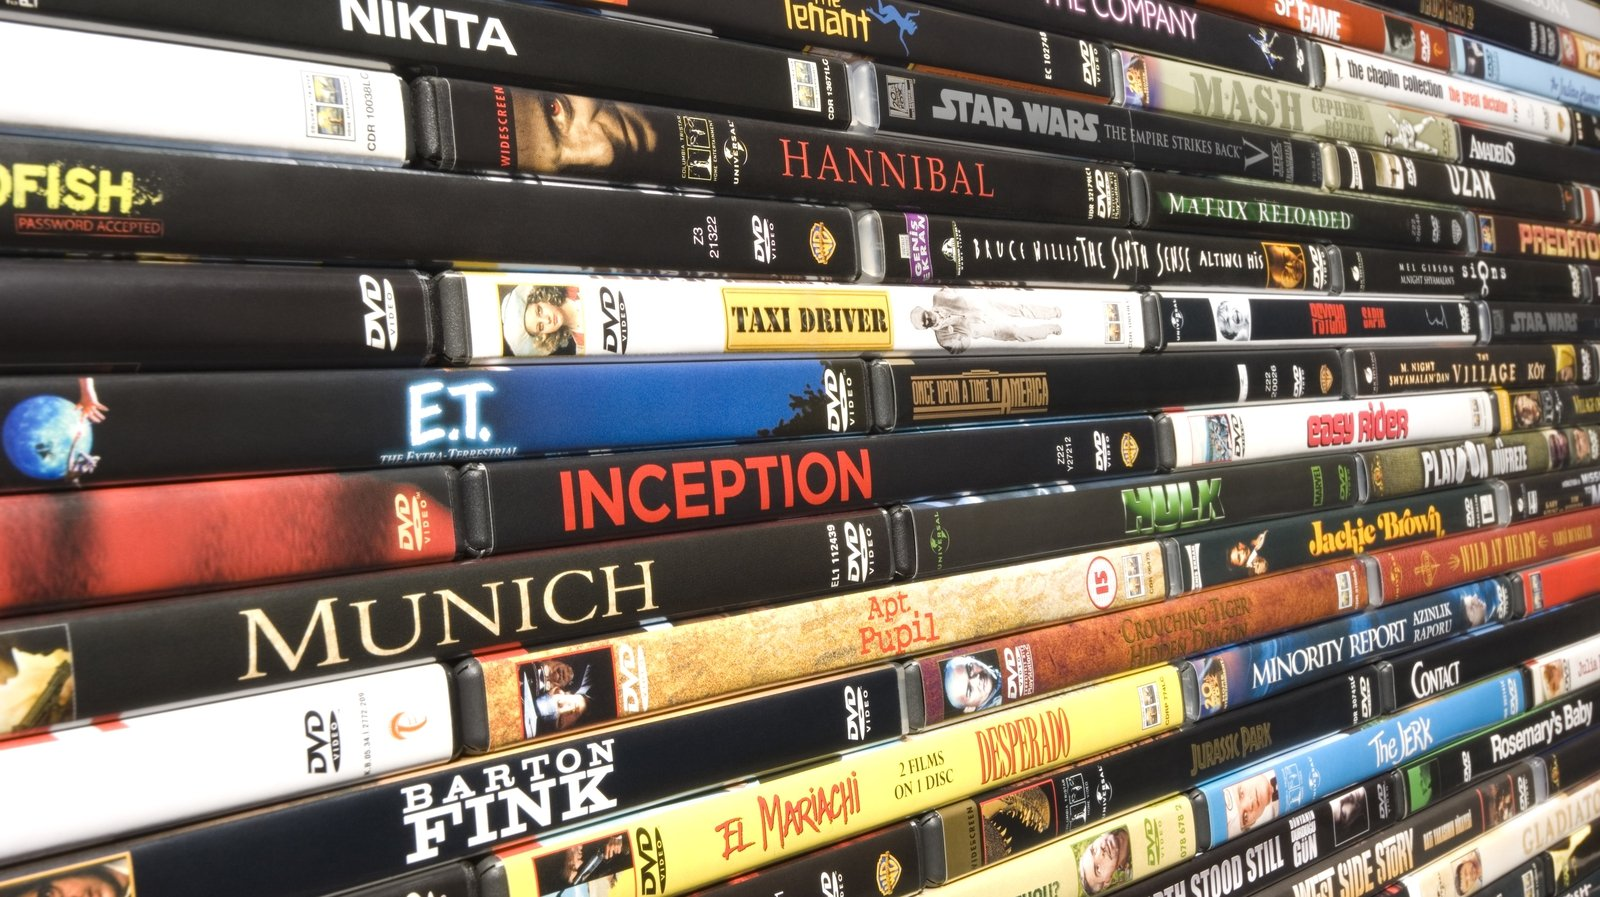 Image - DVD libraries - a thing of the past?